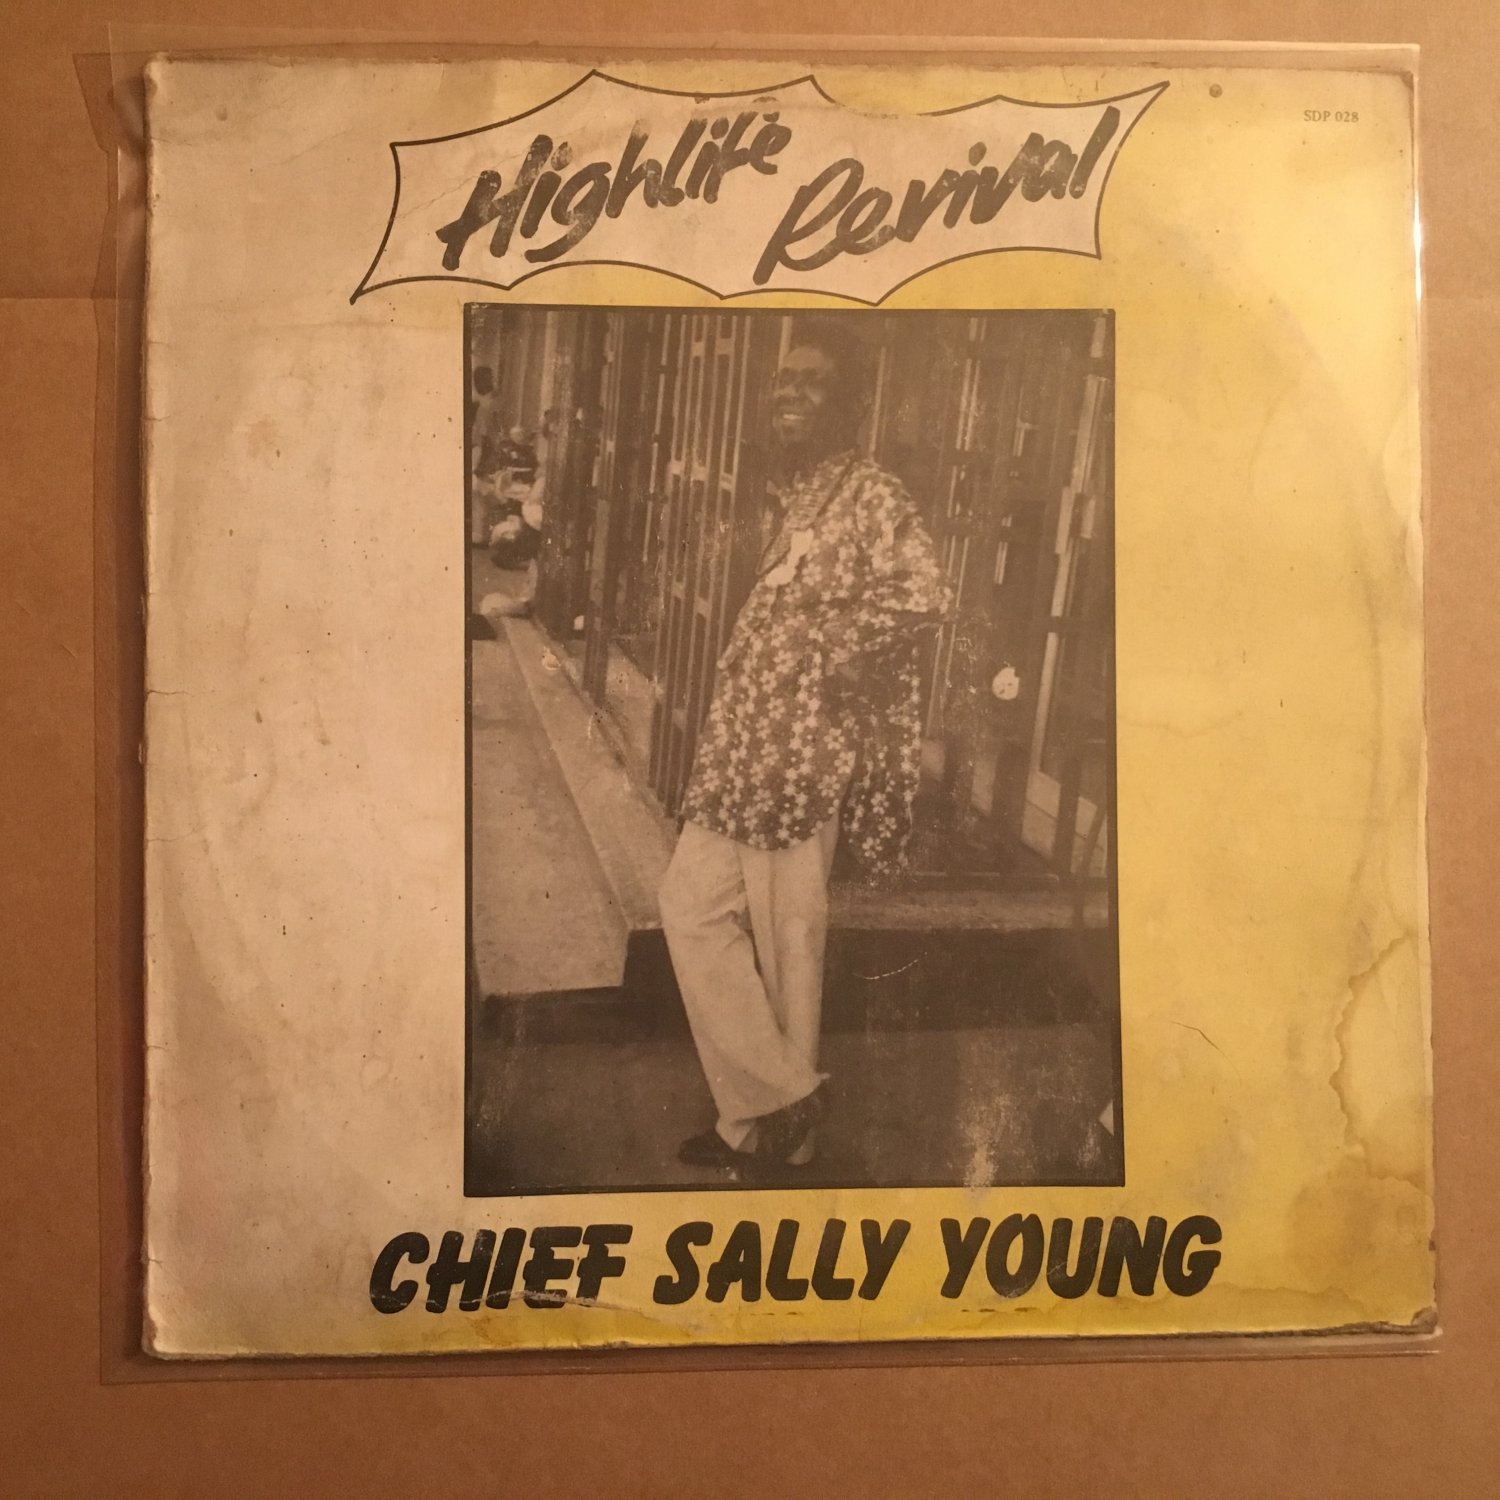 **CHIEF SALLY YOUNG LP highlife revival NIGERIA mp3 LISTEN